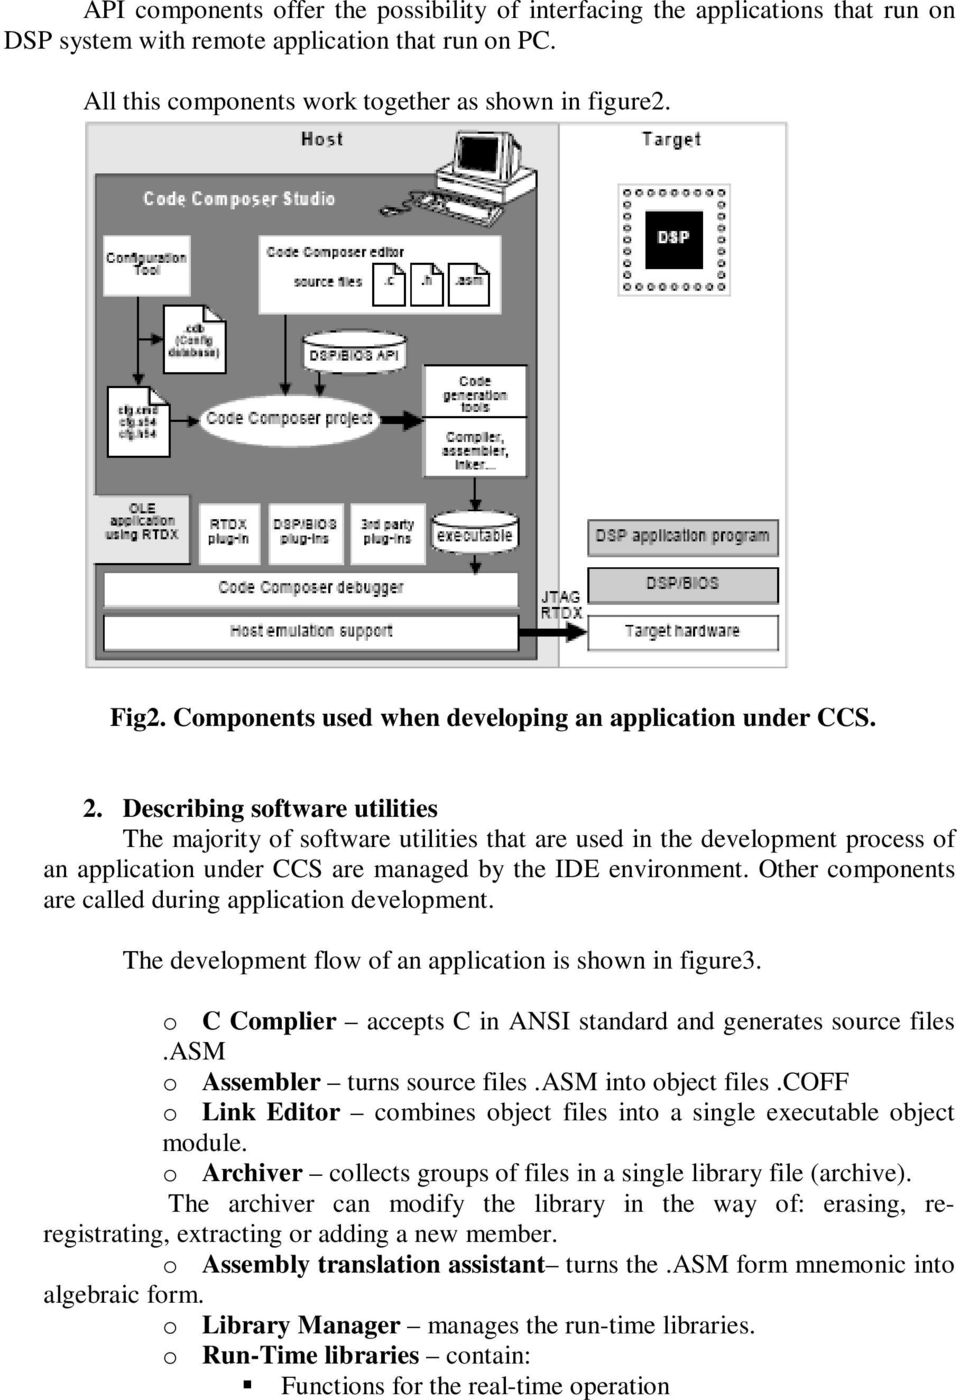 Describing software utilities The majority of software utilities that are used in the development process of an application under CCS are managed by the IDE environment.